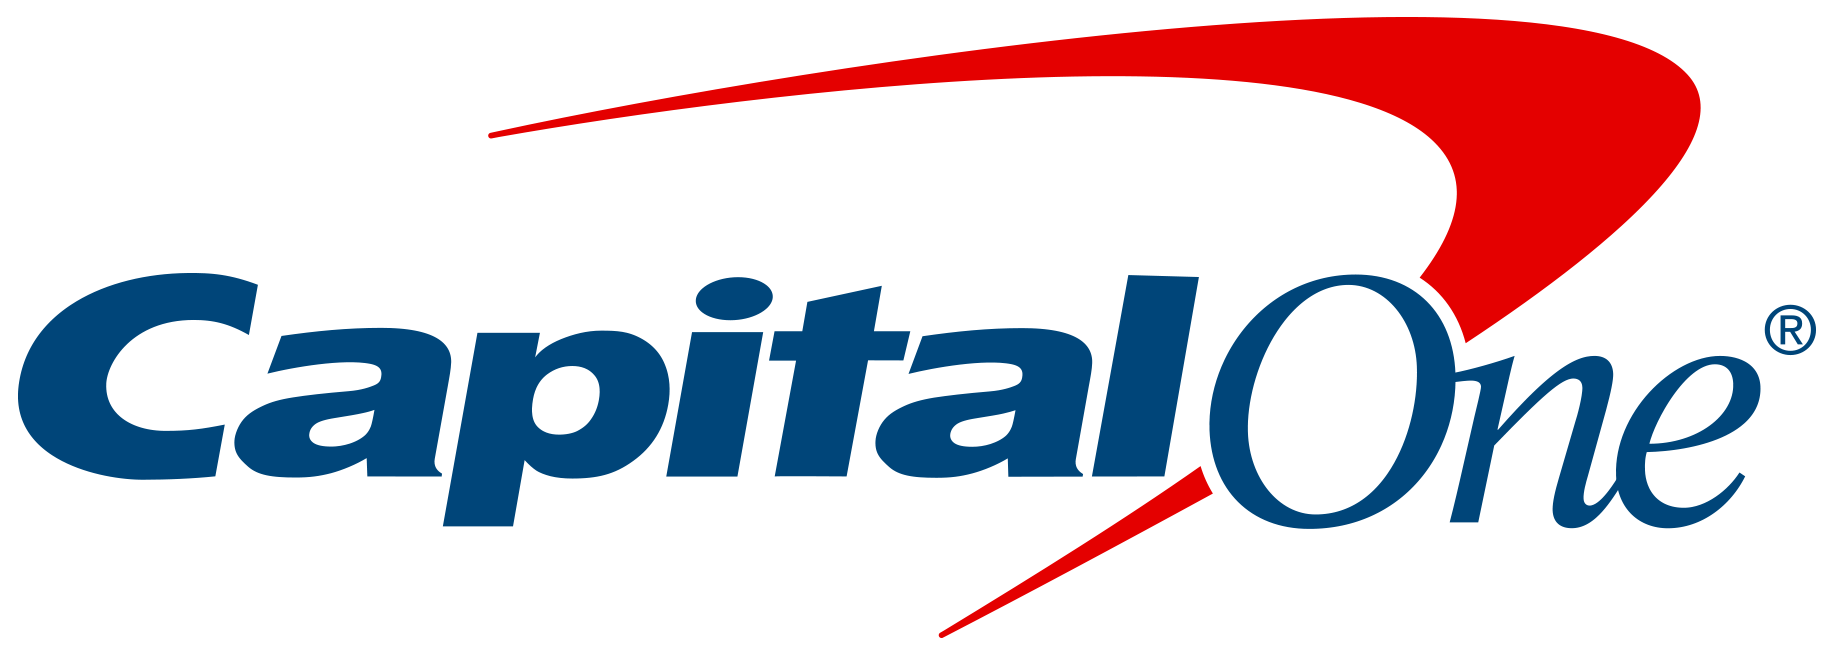 Internship at Capital One